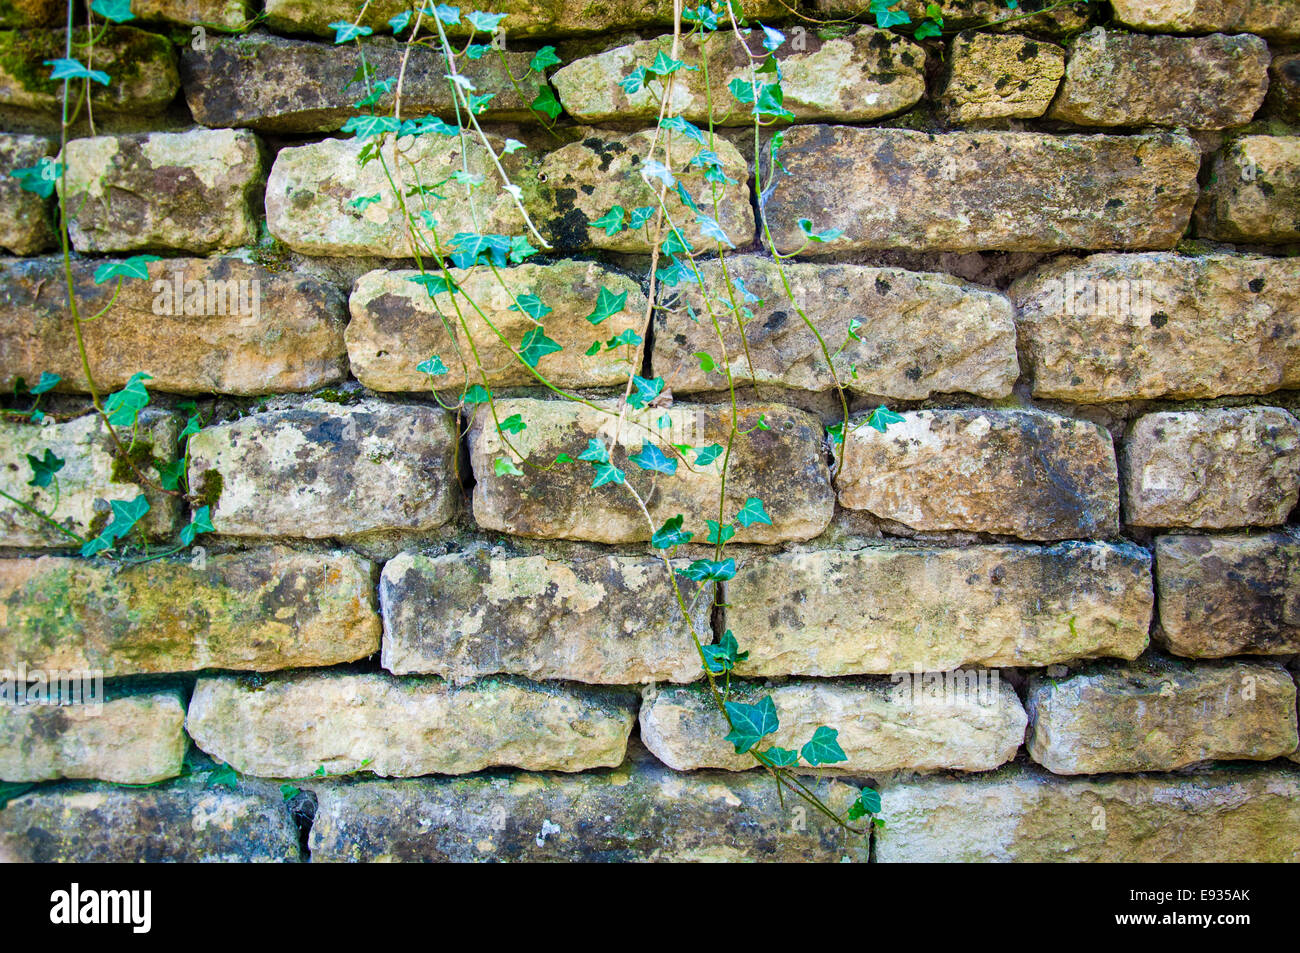 Background Texture Of English Rustic Stone Wall